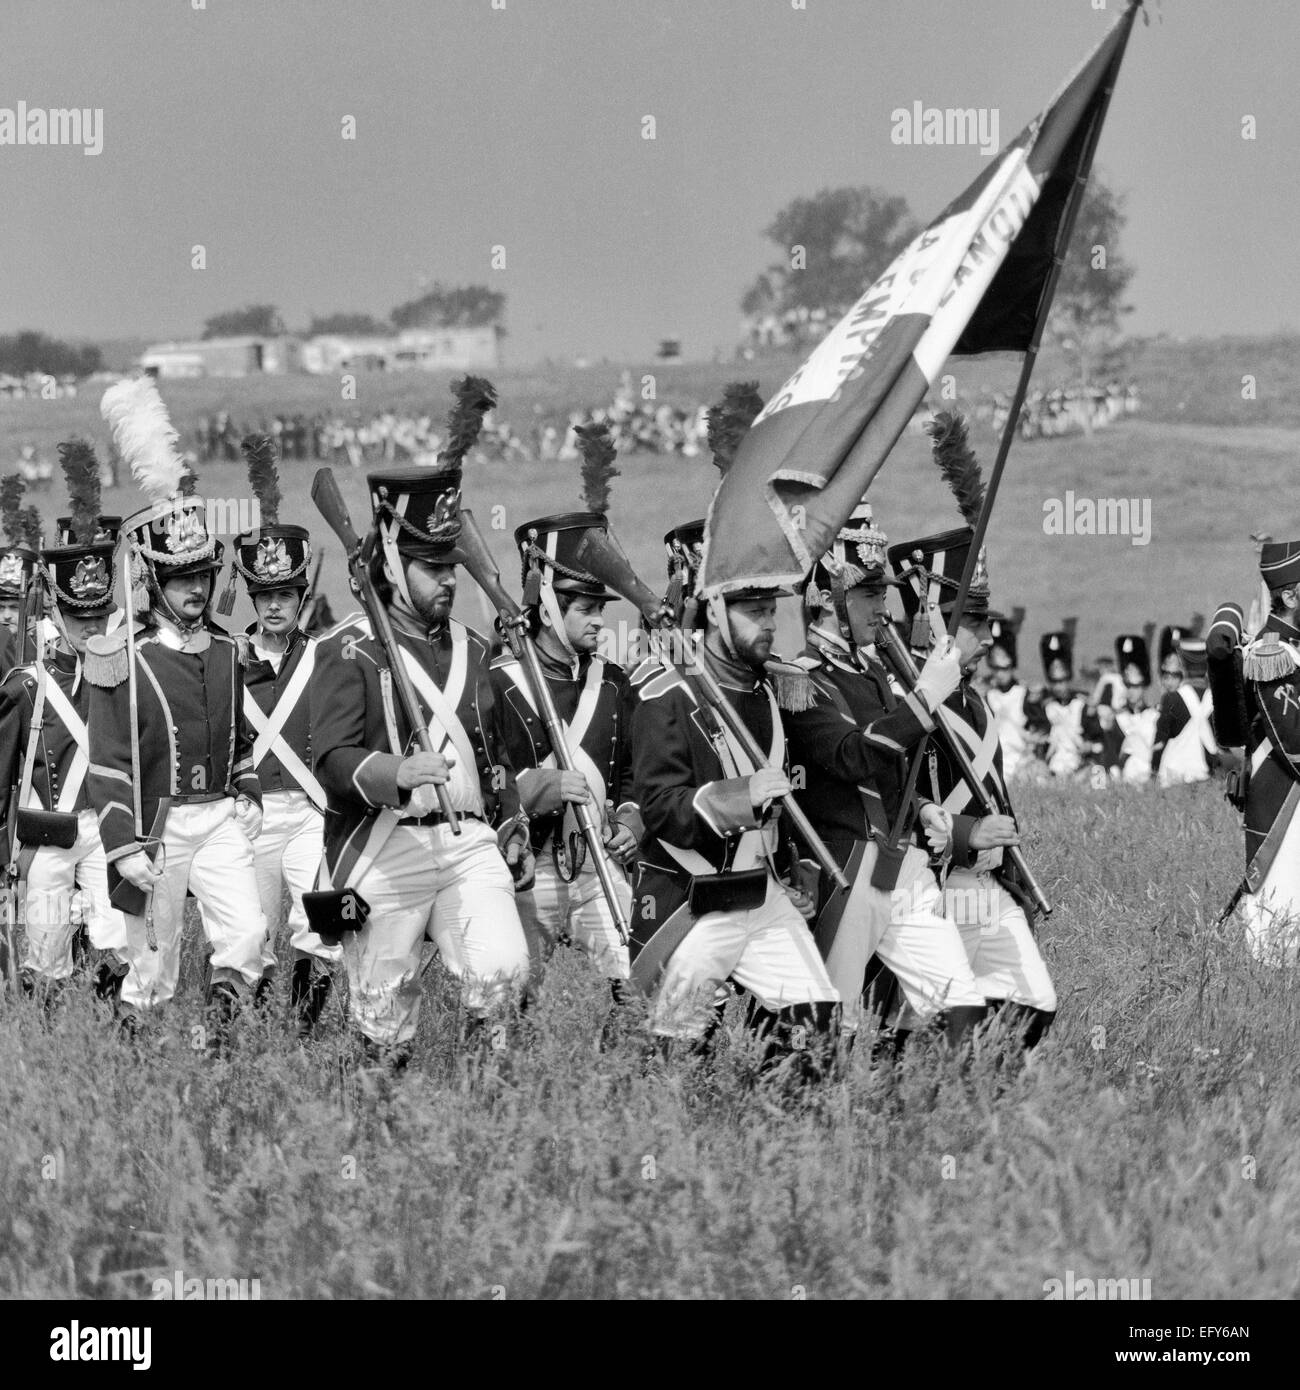 WATERLOO, BELGIUM -CIRCA 1990: Actors in costume during the reenactment of the Battle of Waterloo that in 1815 ended - Stock Image